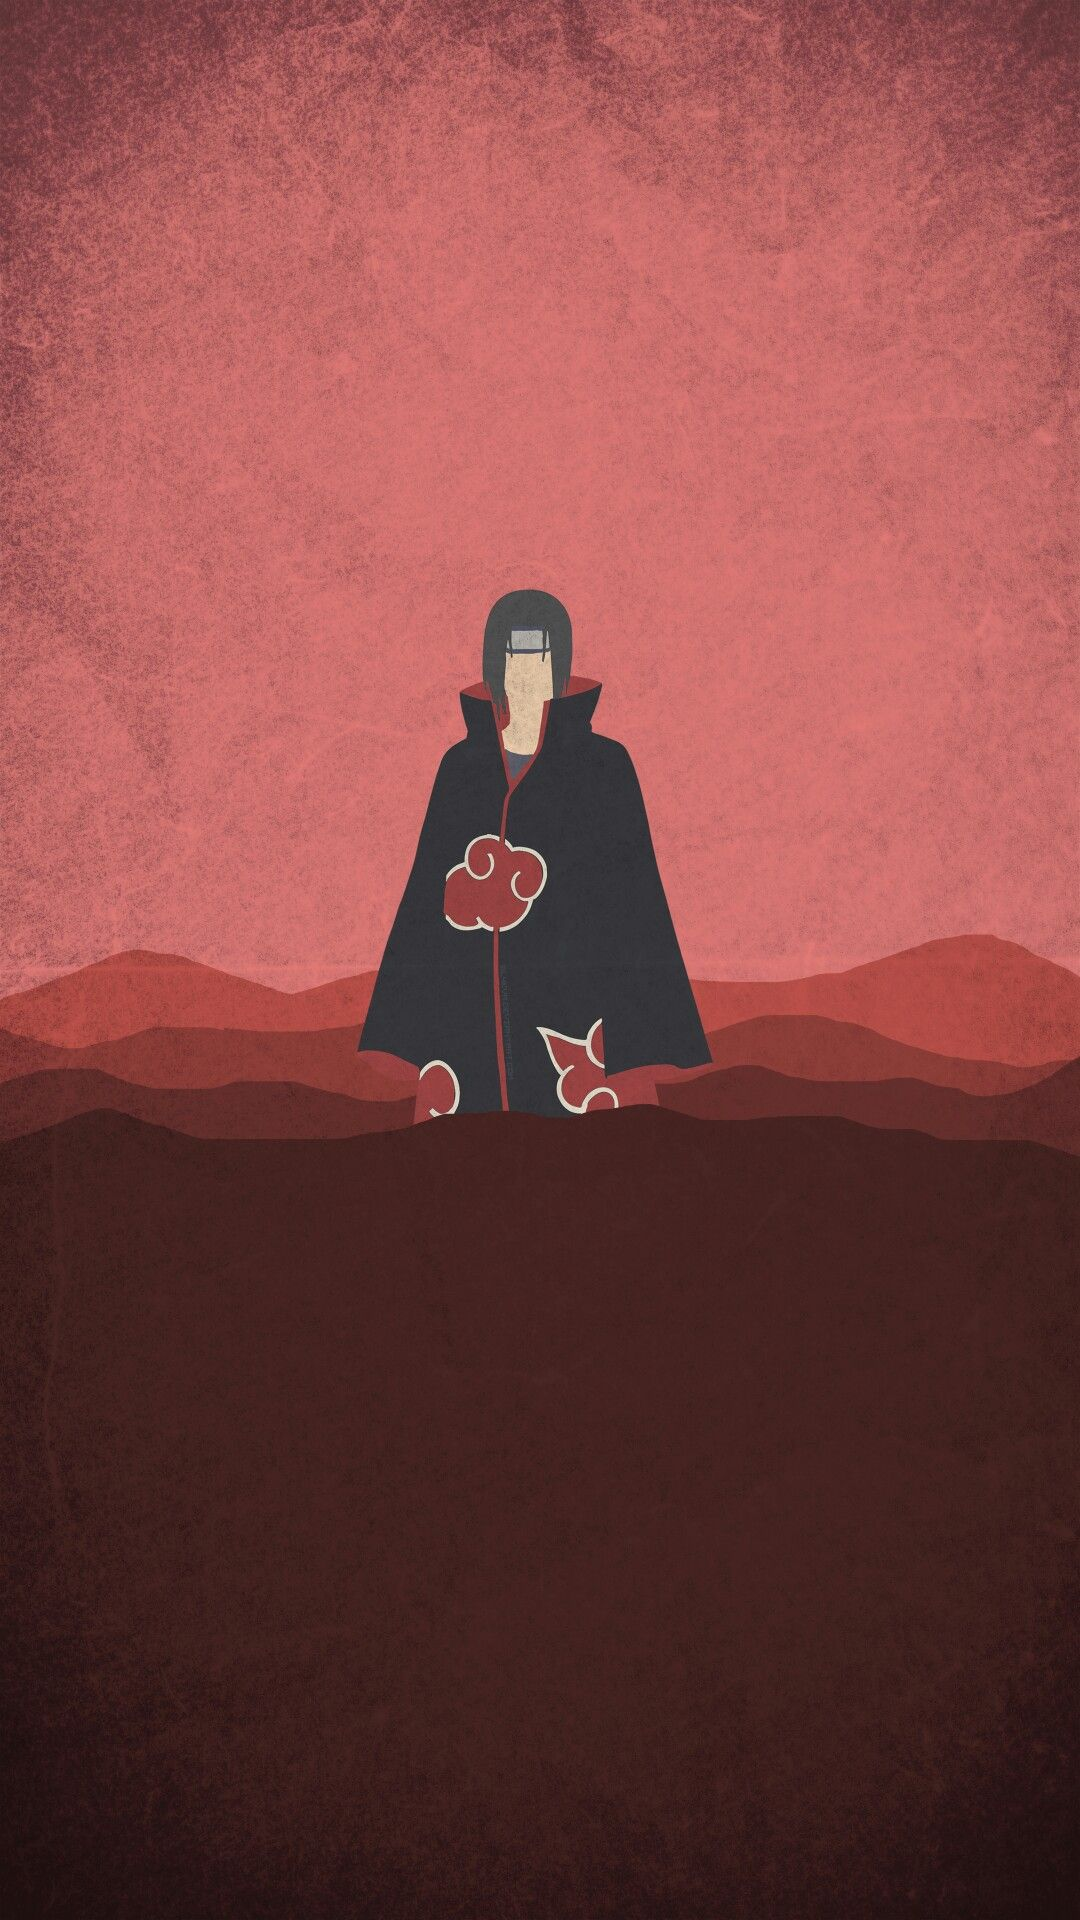 Naruto Minimalist Mobile Wallpaper Itachi Uchiha Naruto Wallpaper Naruto Wallpaper Iphone